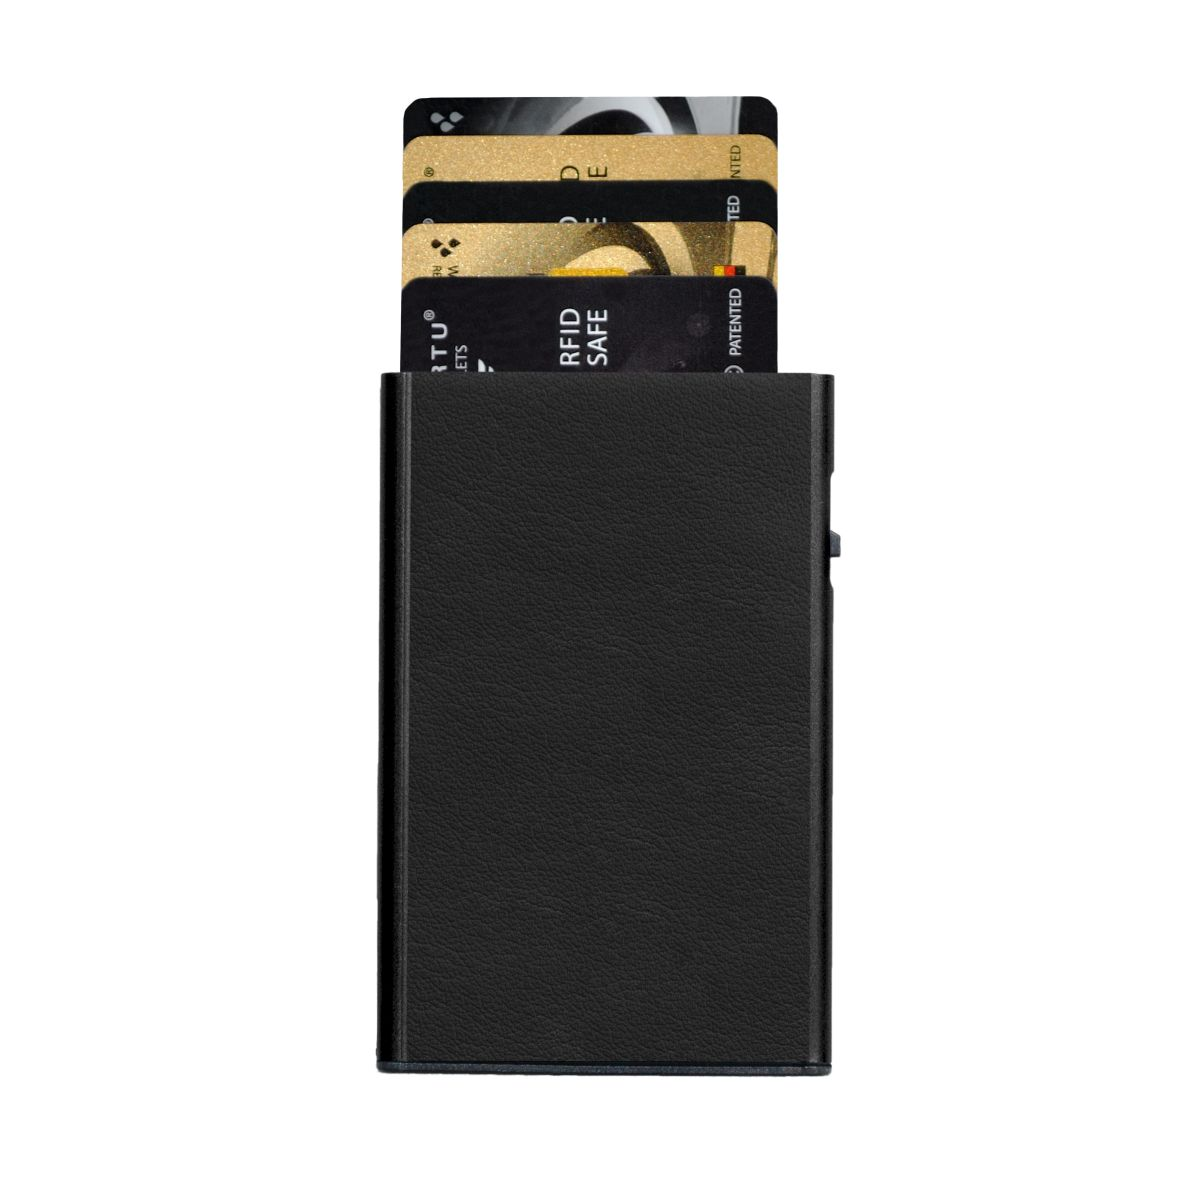 TRU VIRTU Card Case Click n Slide Wallet - Nappa Black